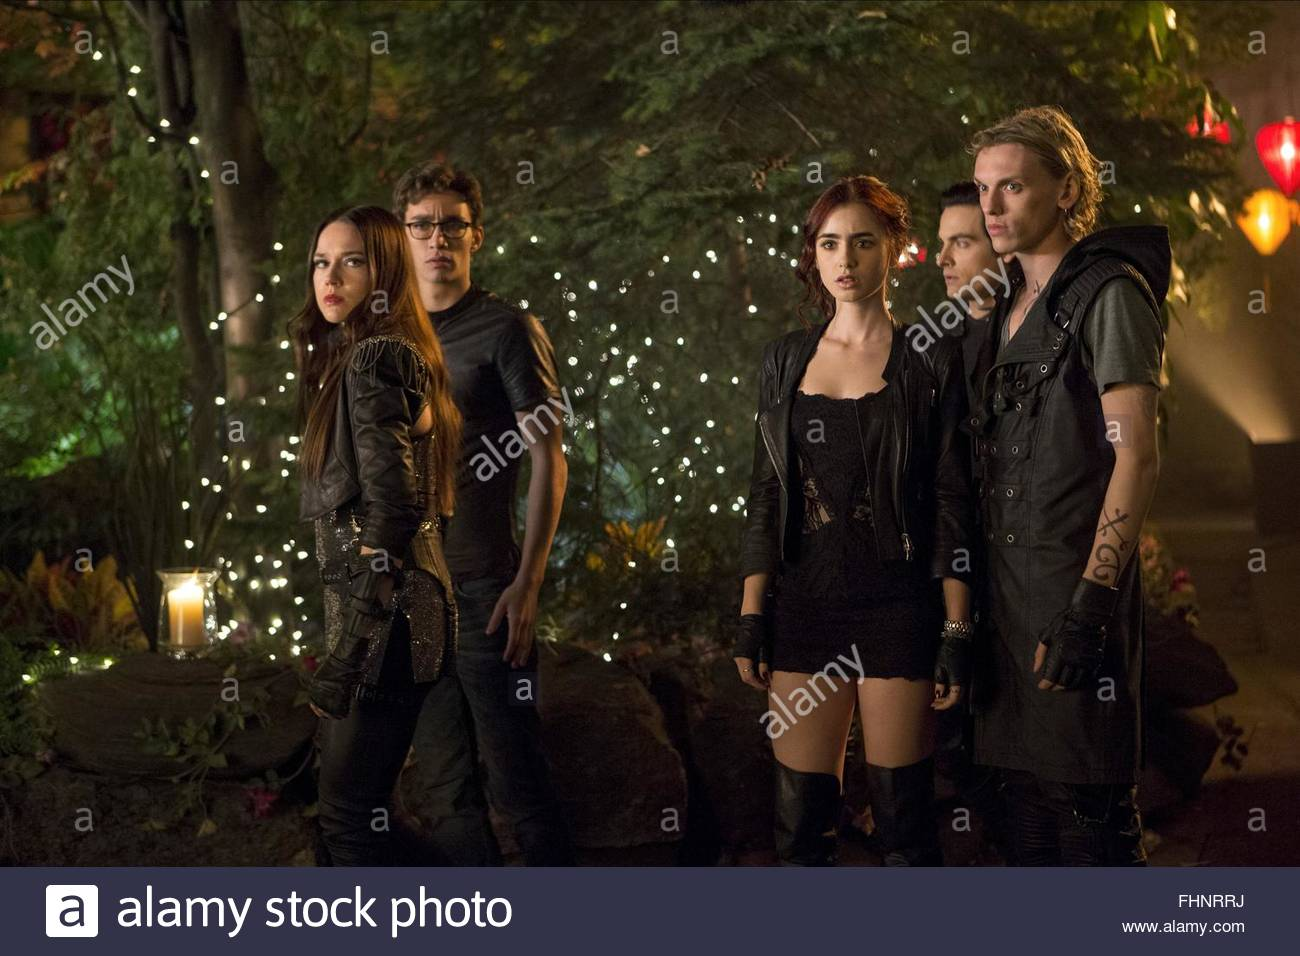 jemima west robert sheehan lily collins kevin zegers